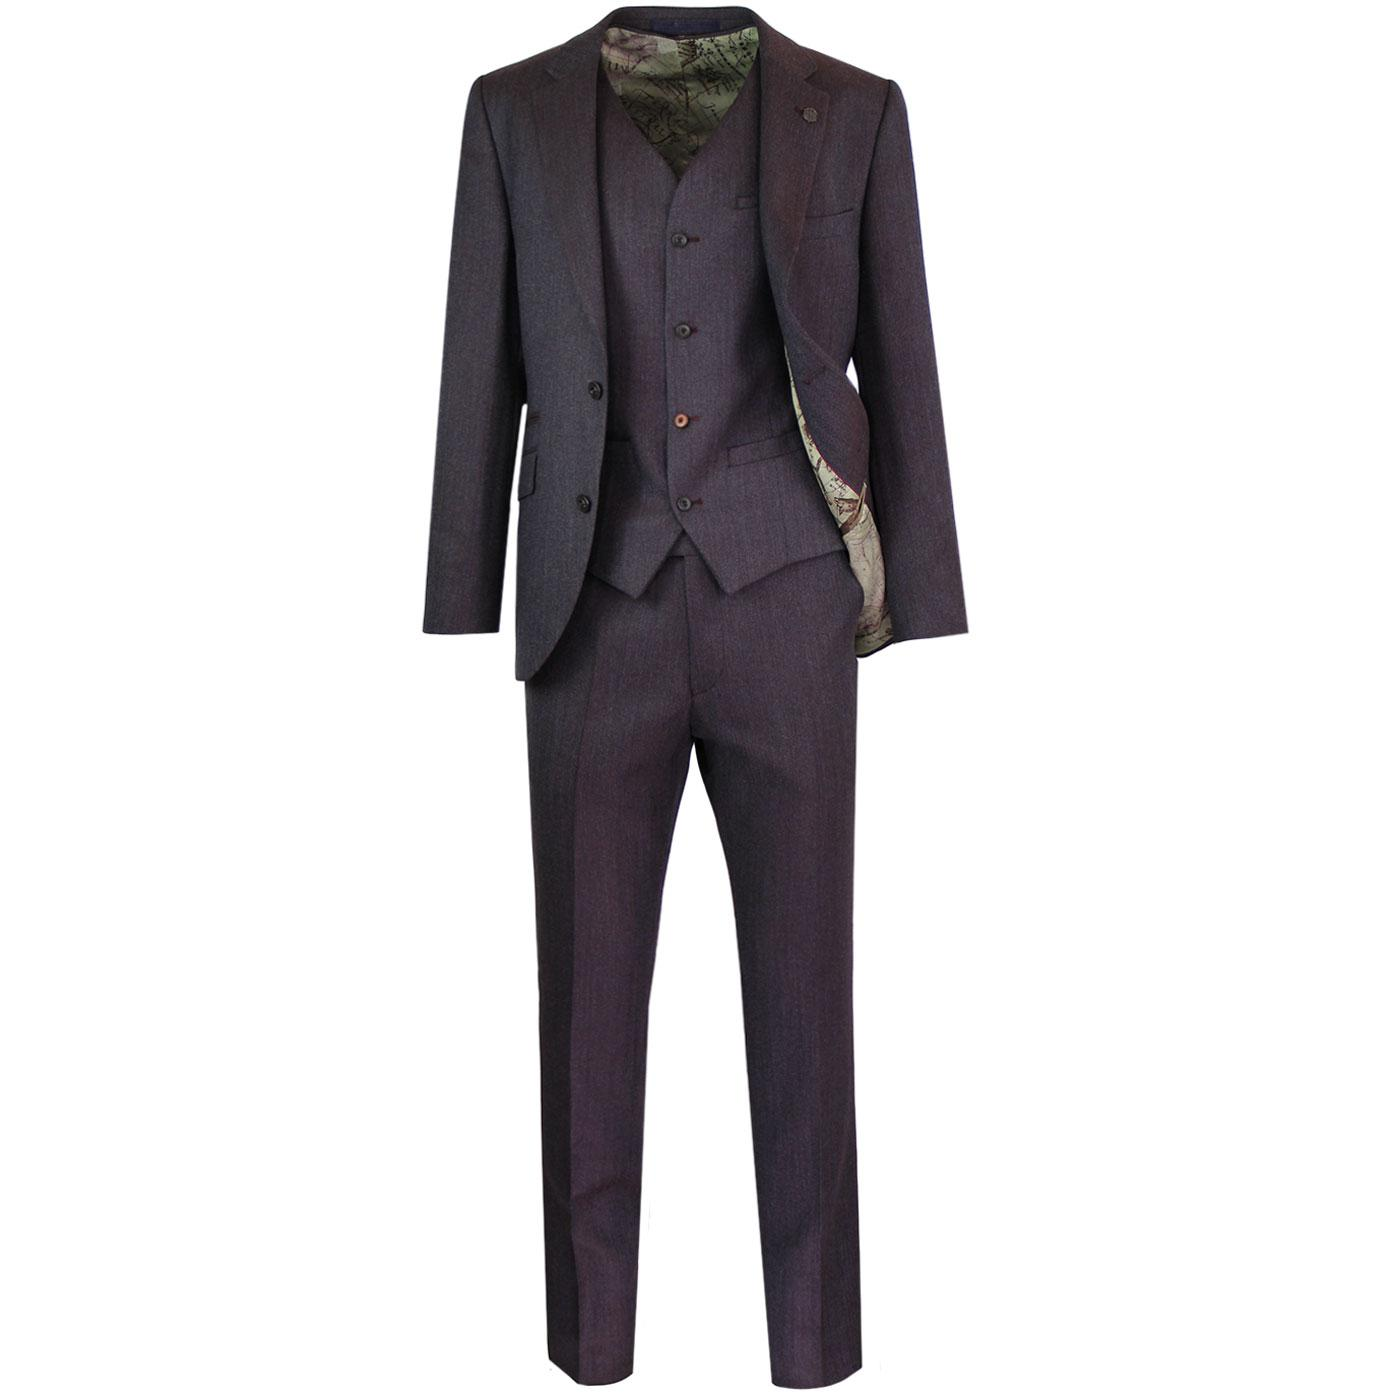 Towergate GIBSON LONDON Herringbone Tonic Mod Suit